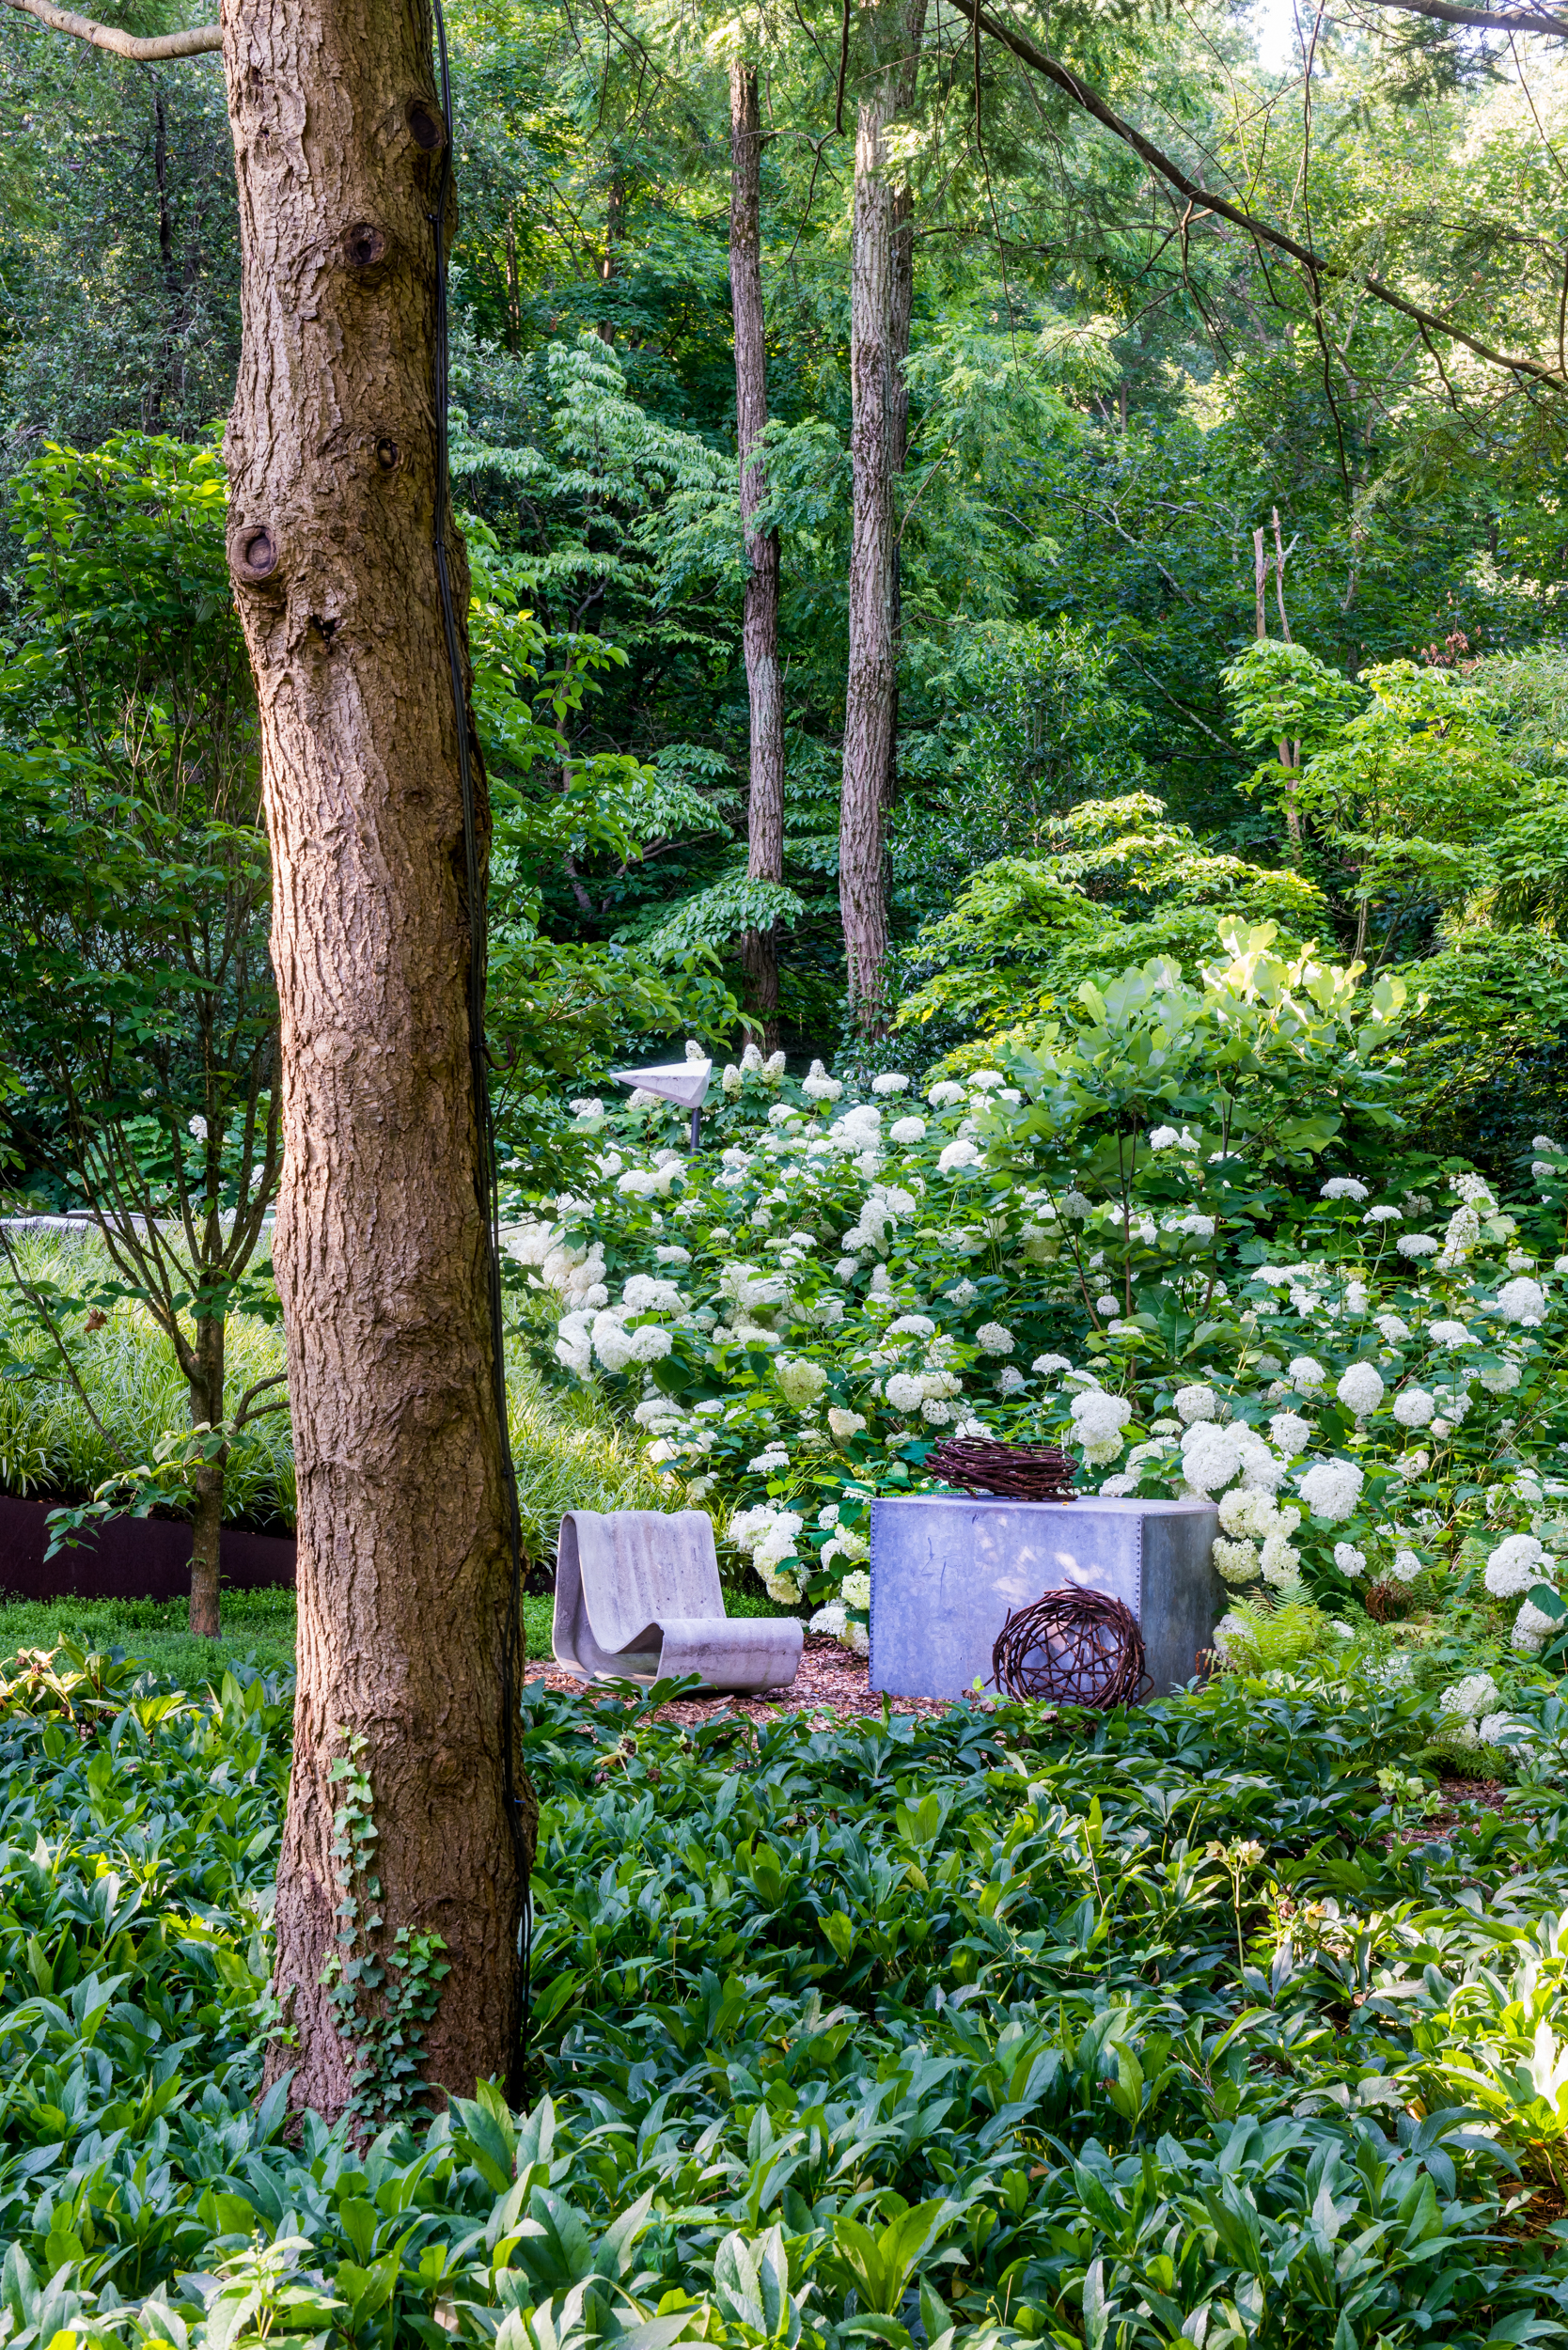 Woodland garden with art and outdoor furniture